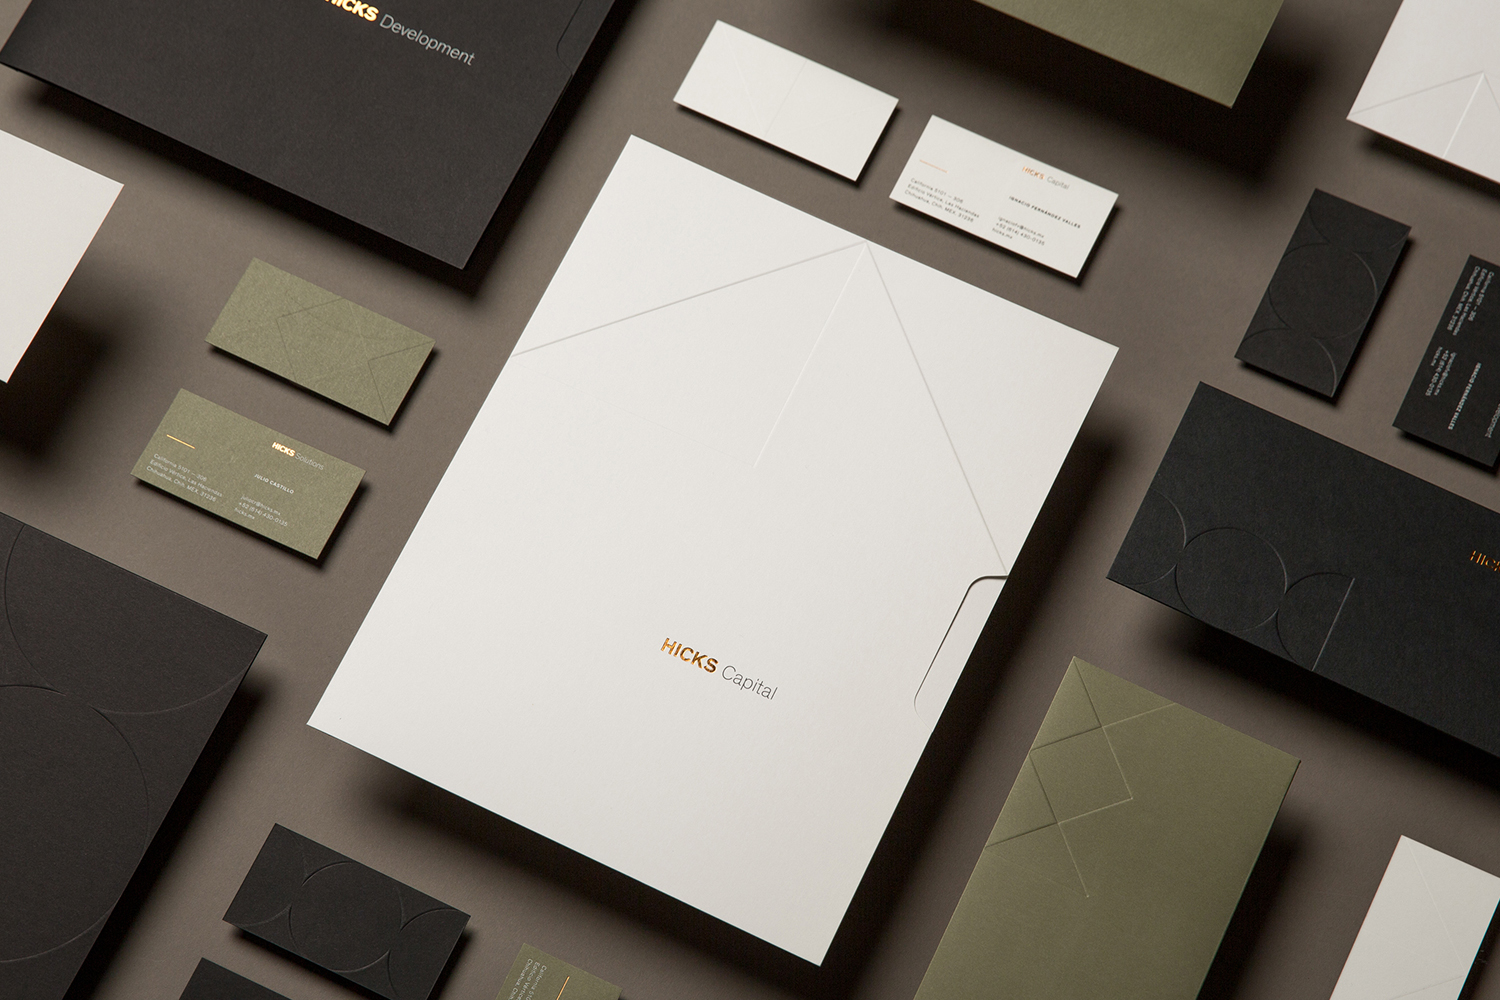 Logo, stationery and business cards with block foil detail designed by Face for Mexican real estate group Hicks.